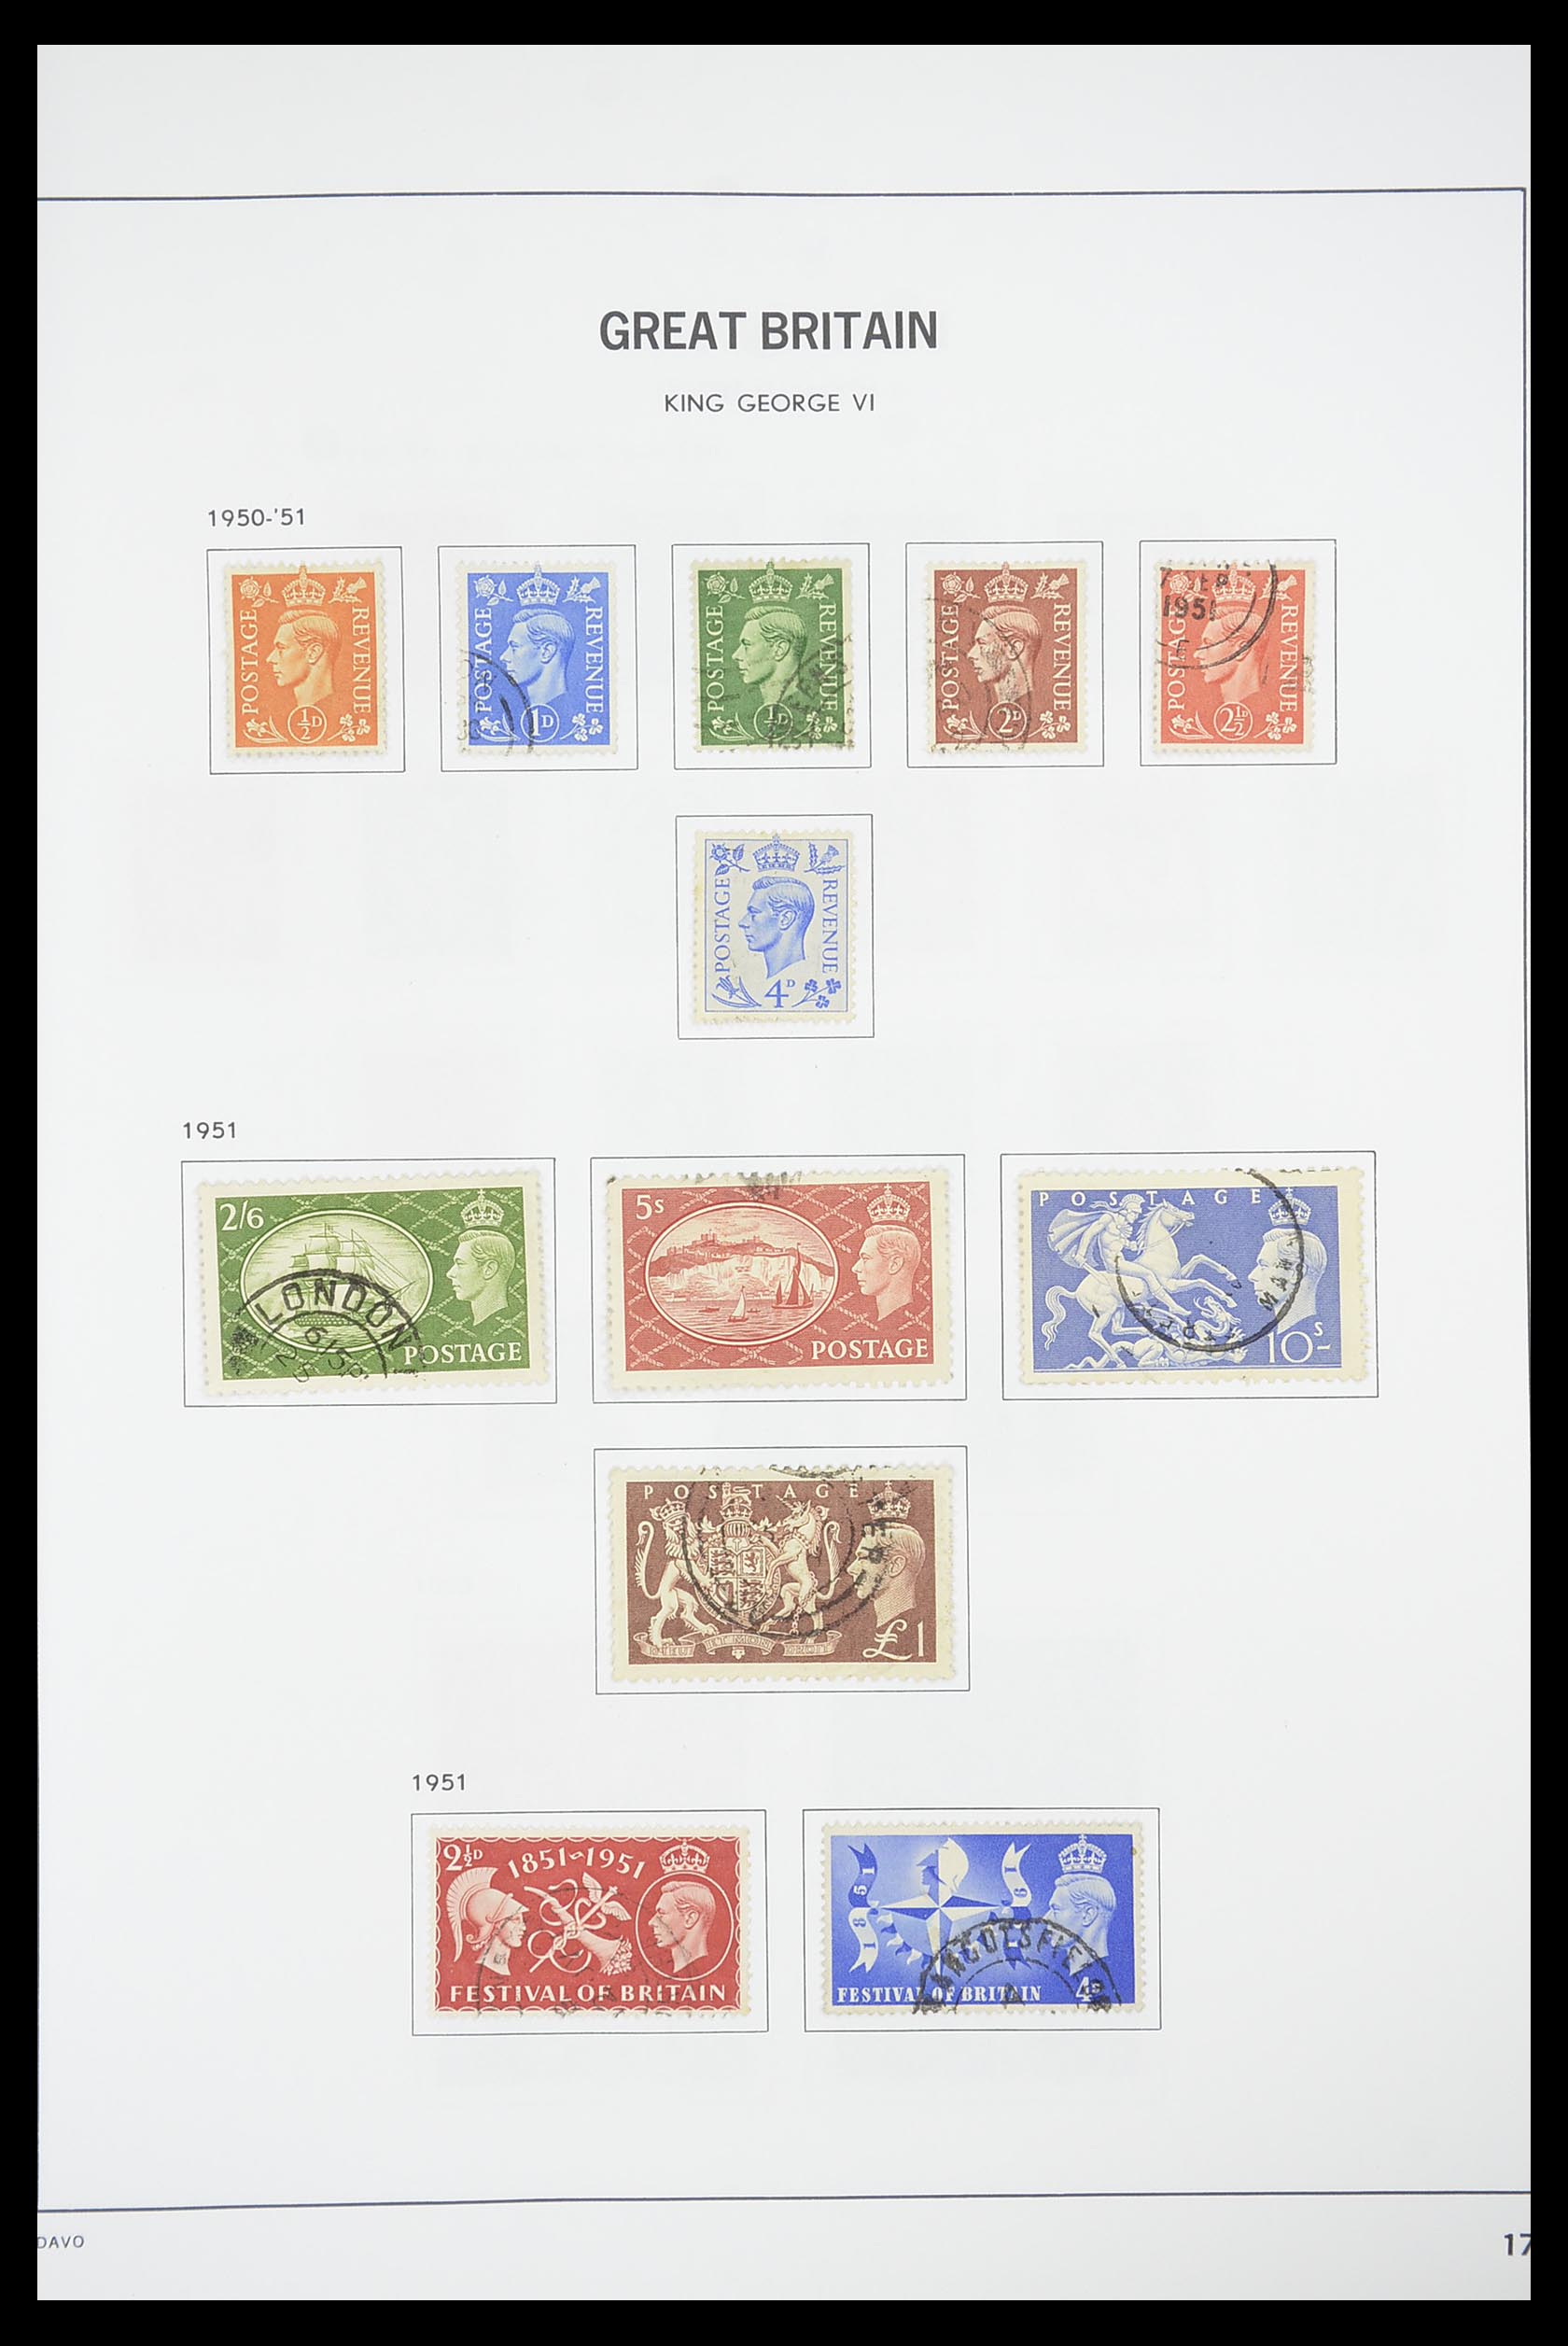 33898 016 - Stamp collection 33898 Great Britain 1840-2006.